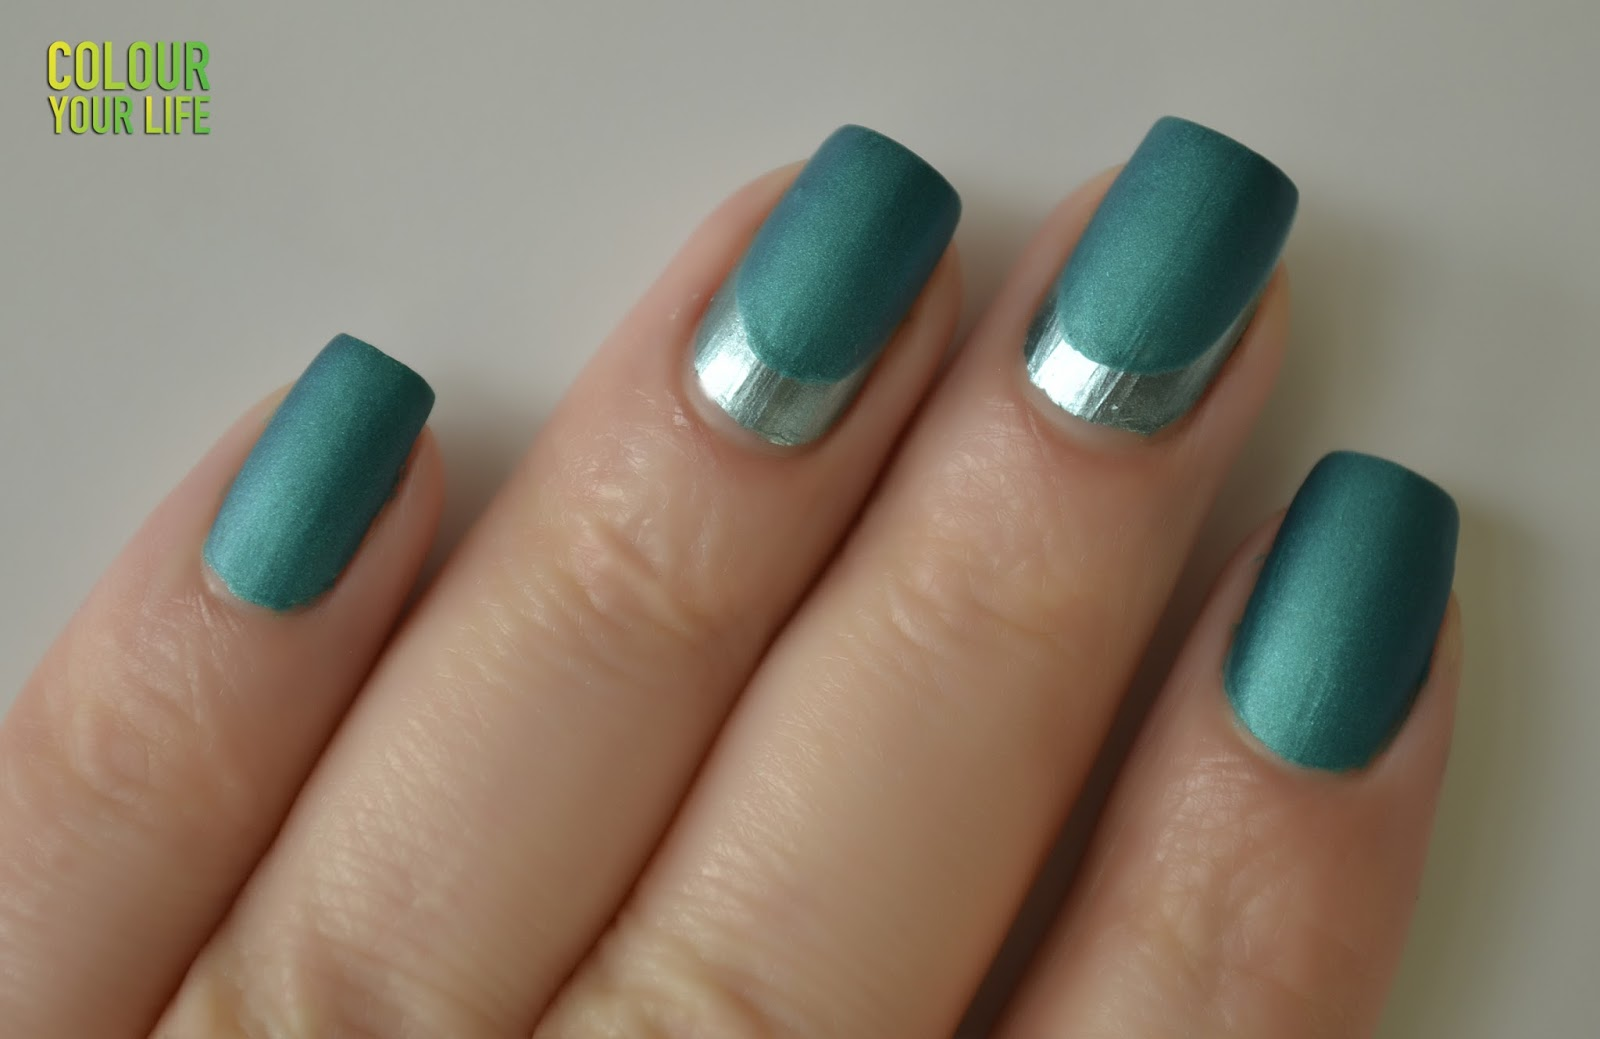 Colour your life: Reverse french nails